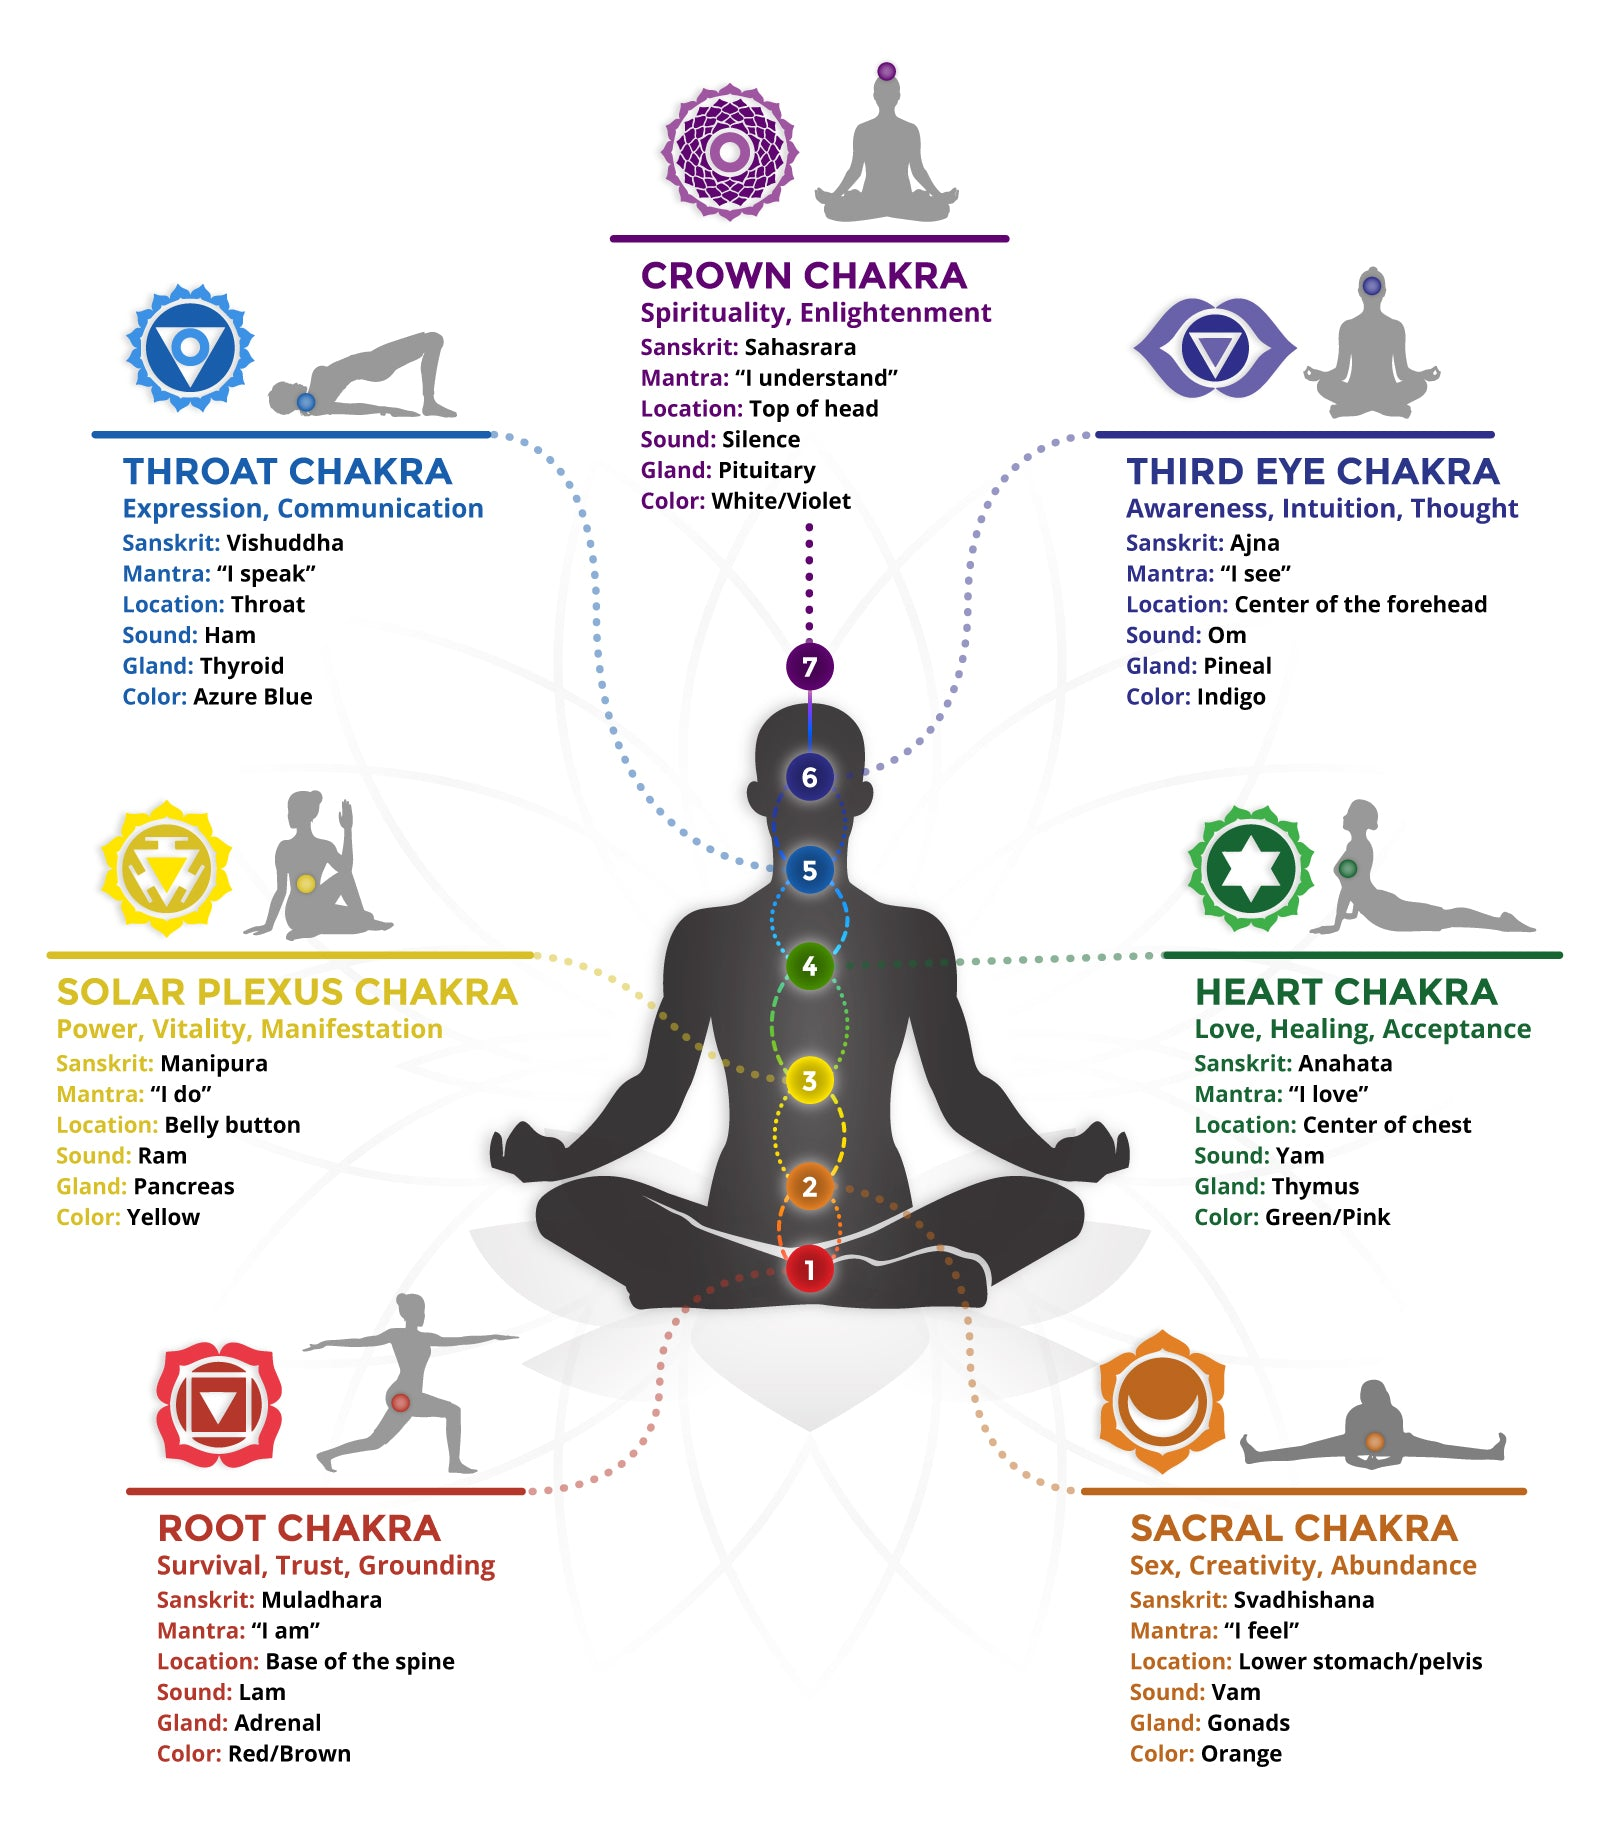 The Ultimate Guide to Chakras: Colors, Symbols, Glands, & Their Meanings!